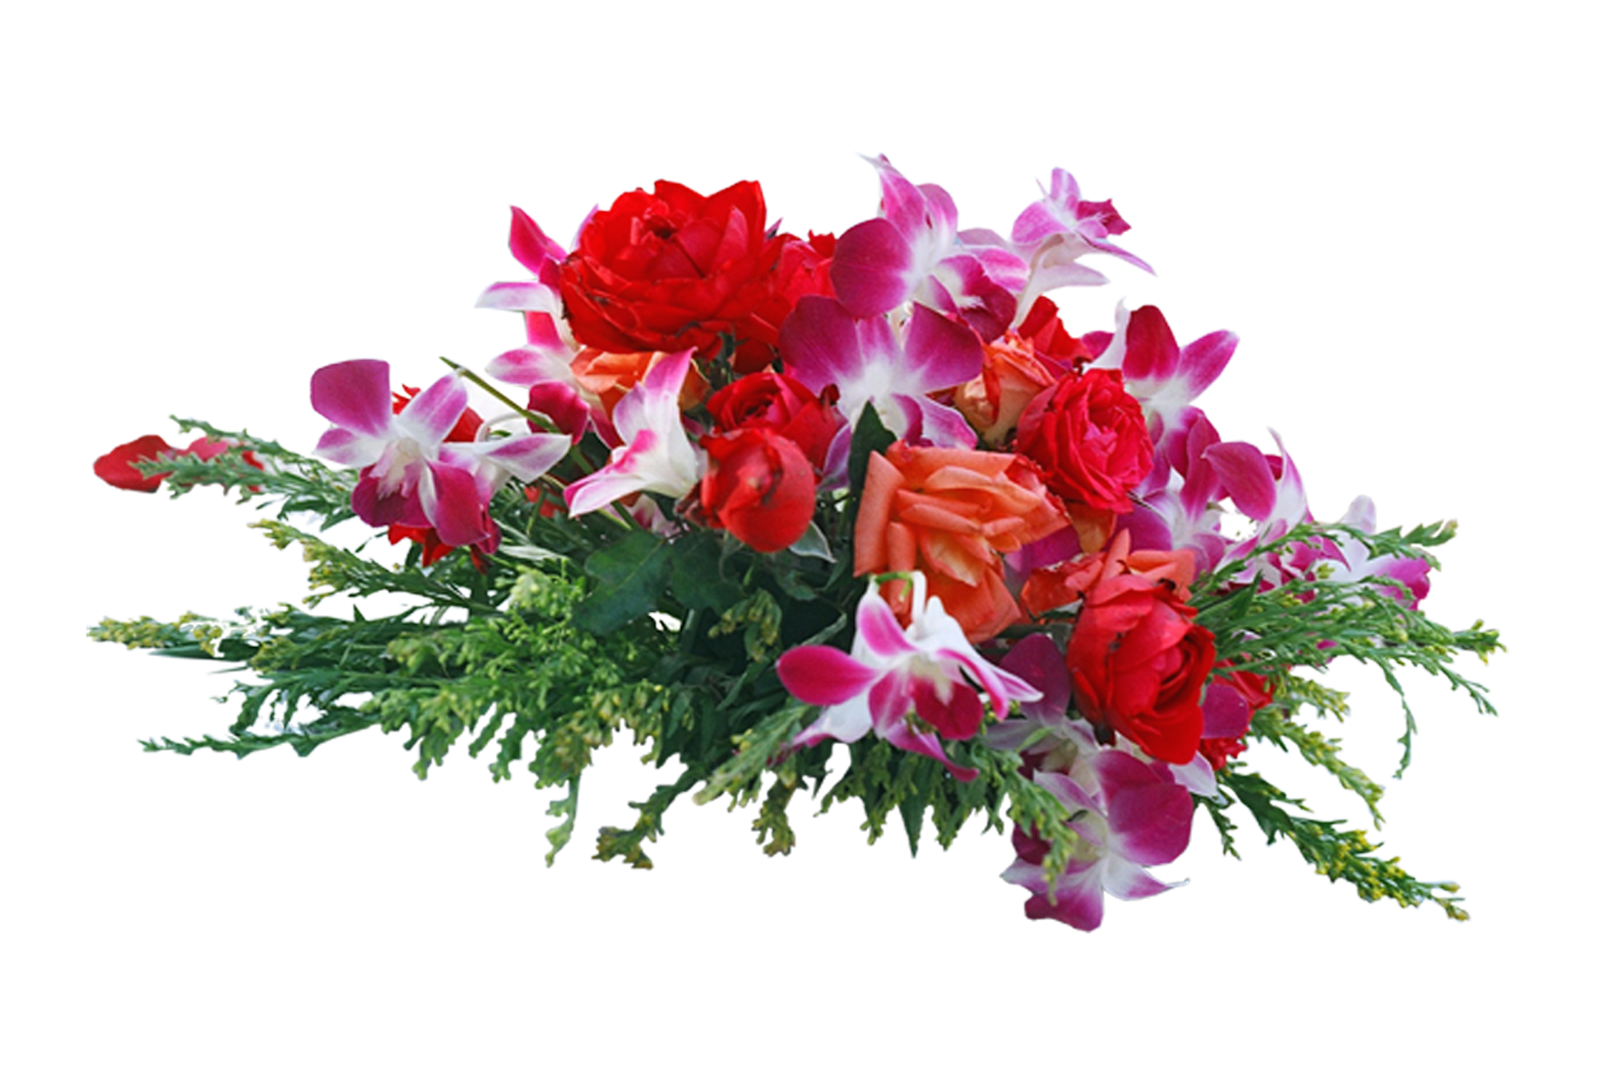 Png flower images with transparent background. Wedding flowers image